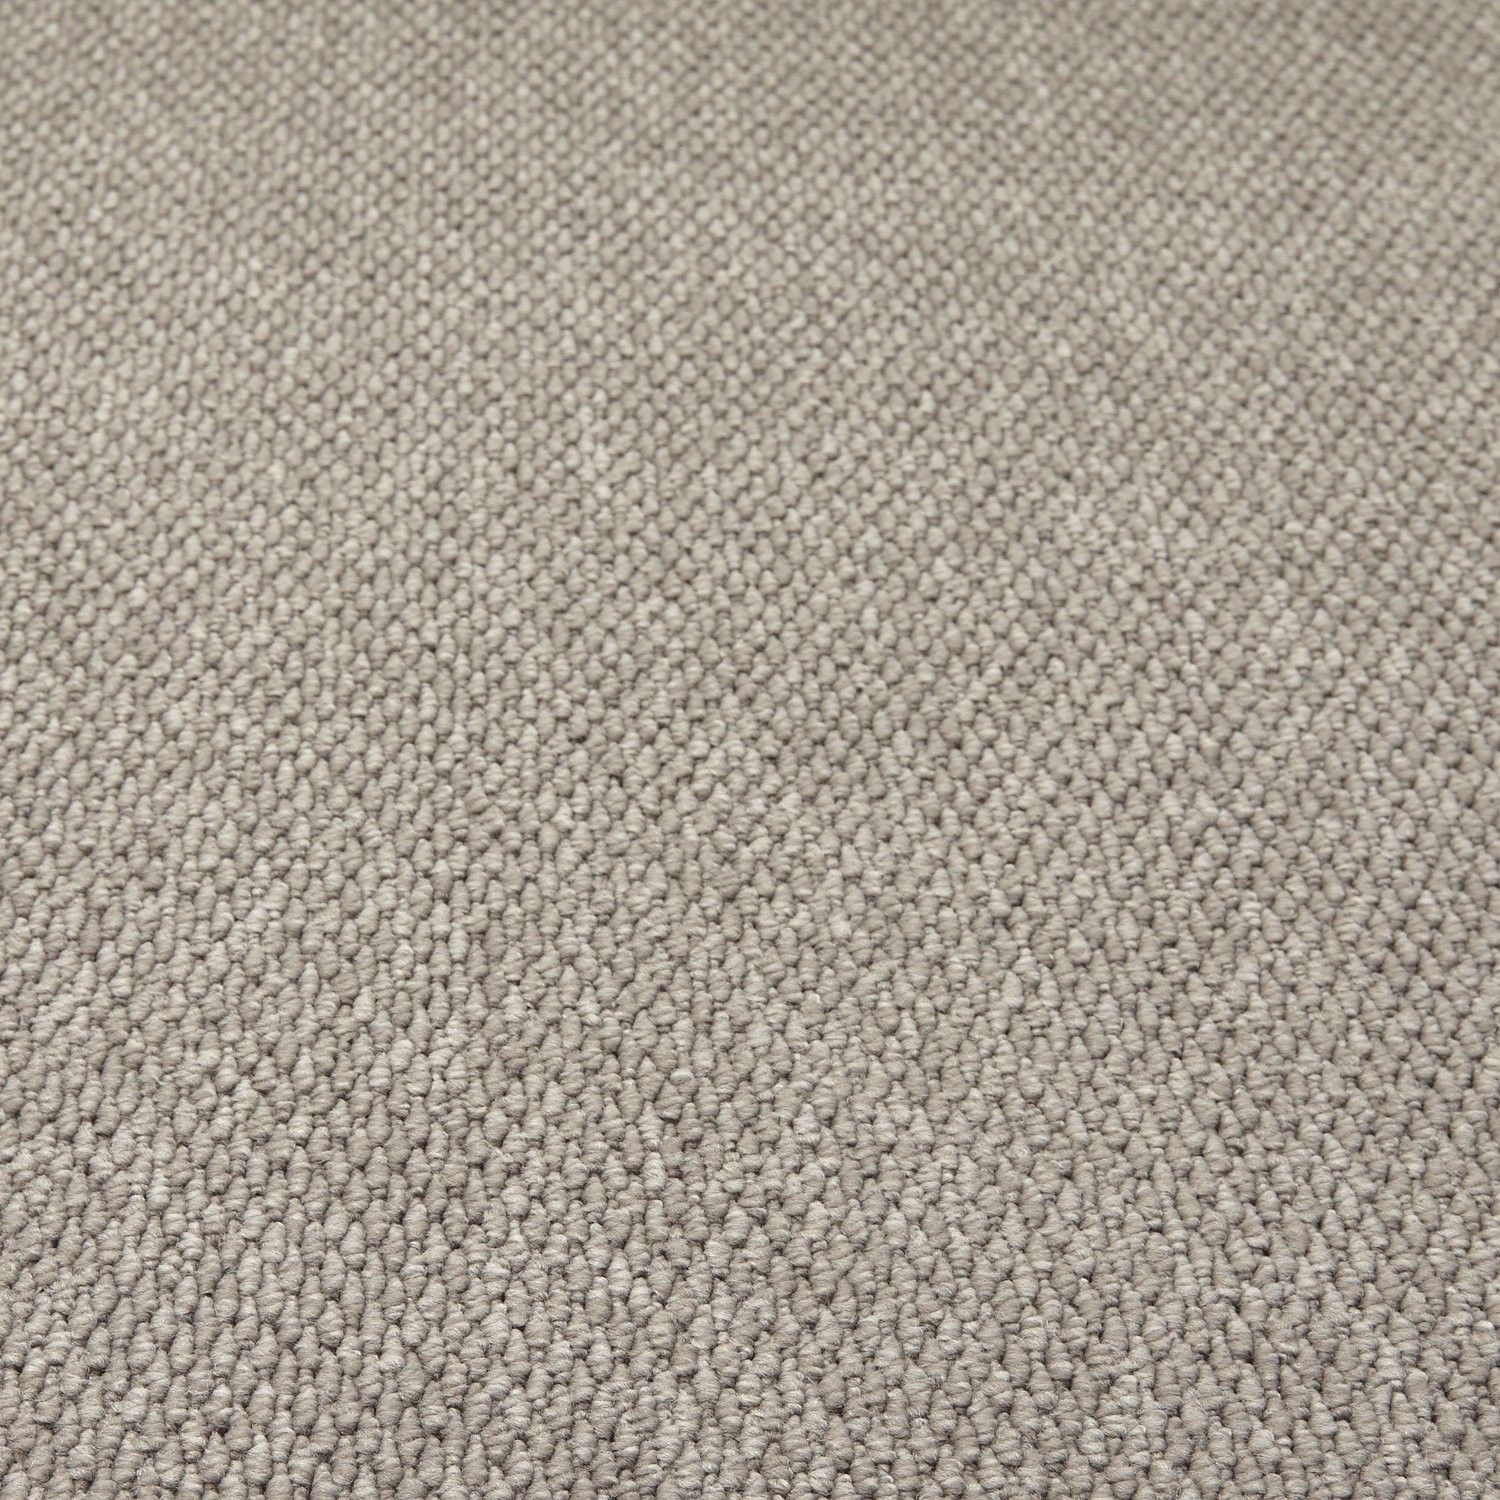 Best Nordic Berber Textured Carpet More For The Home 400 x 300